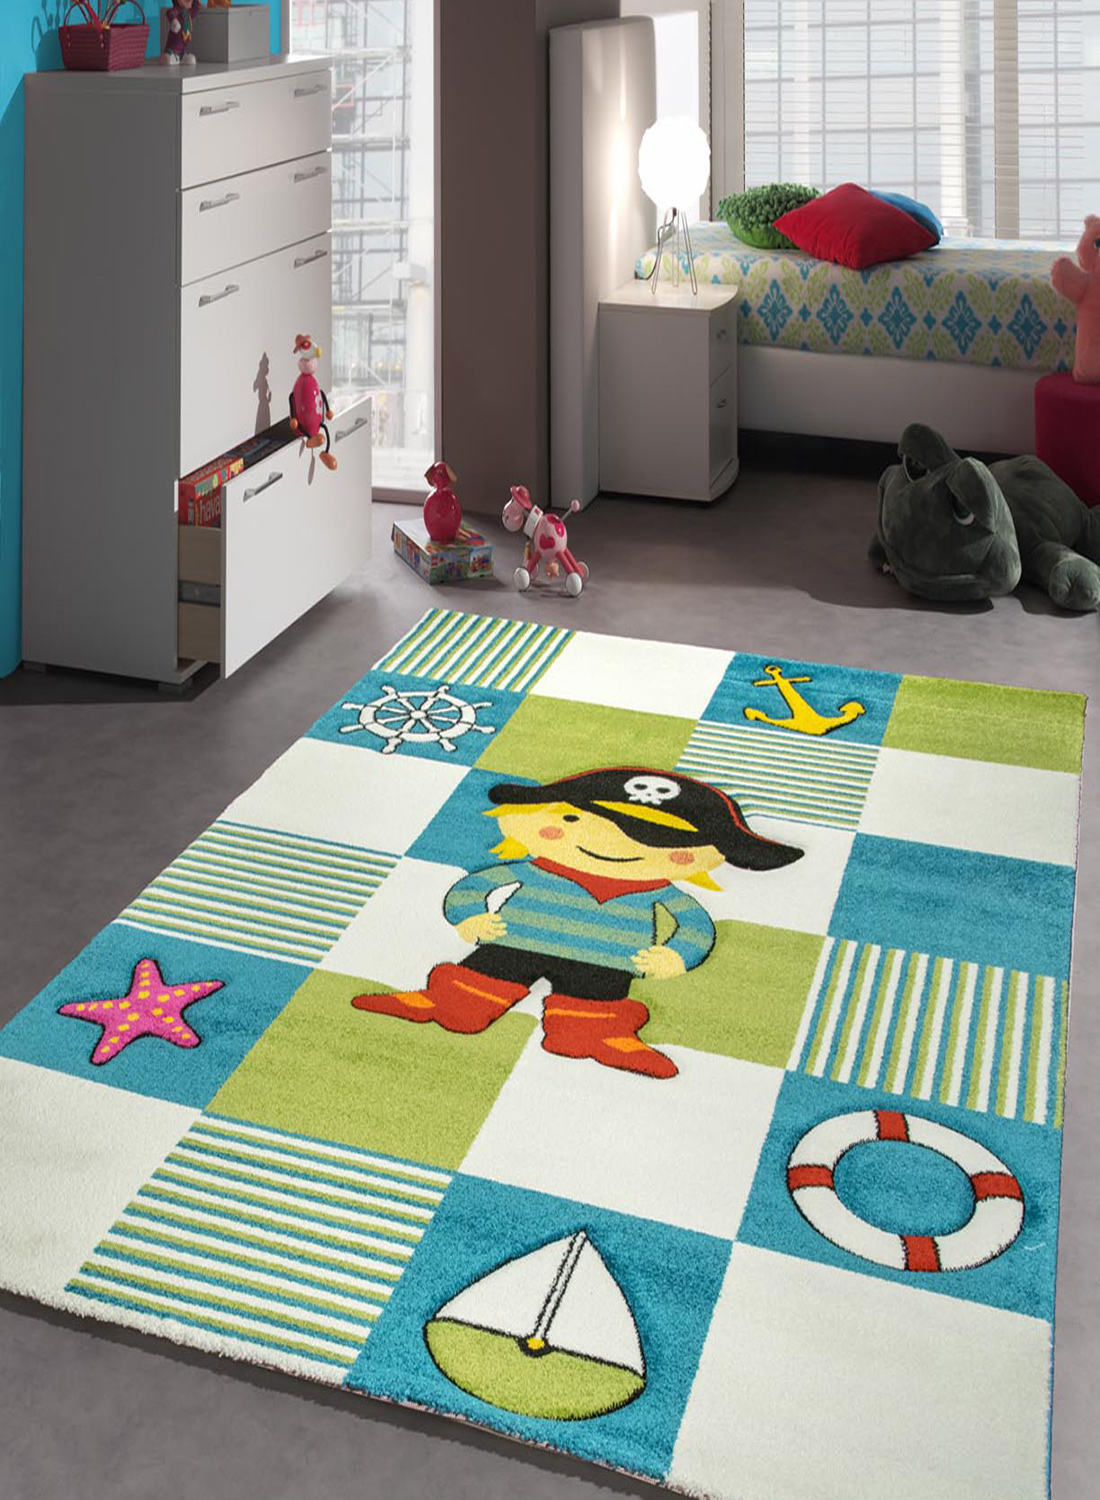 tapis le grand pirate tapis moderne par les tapis ebay. Black Bedroom Furniture Sets. Home Design Ideas